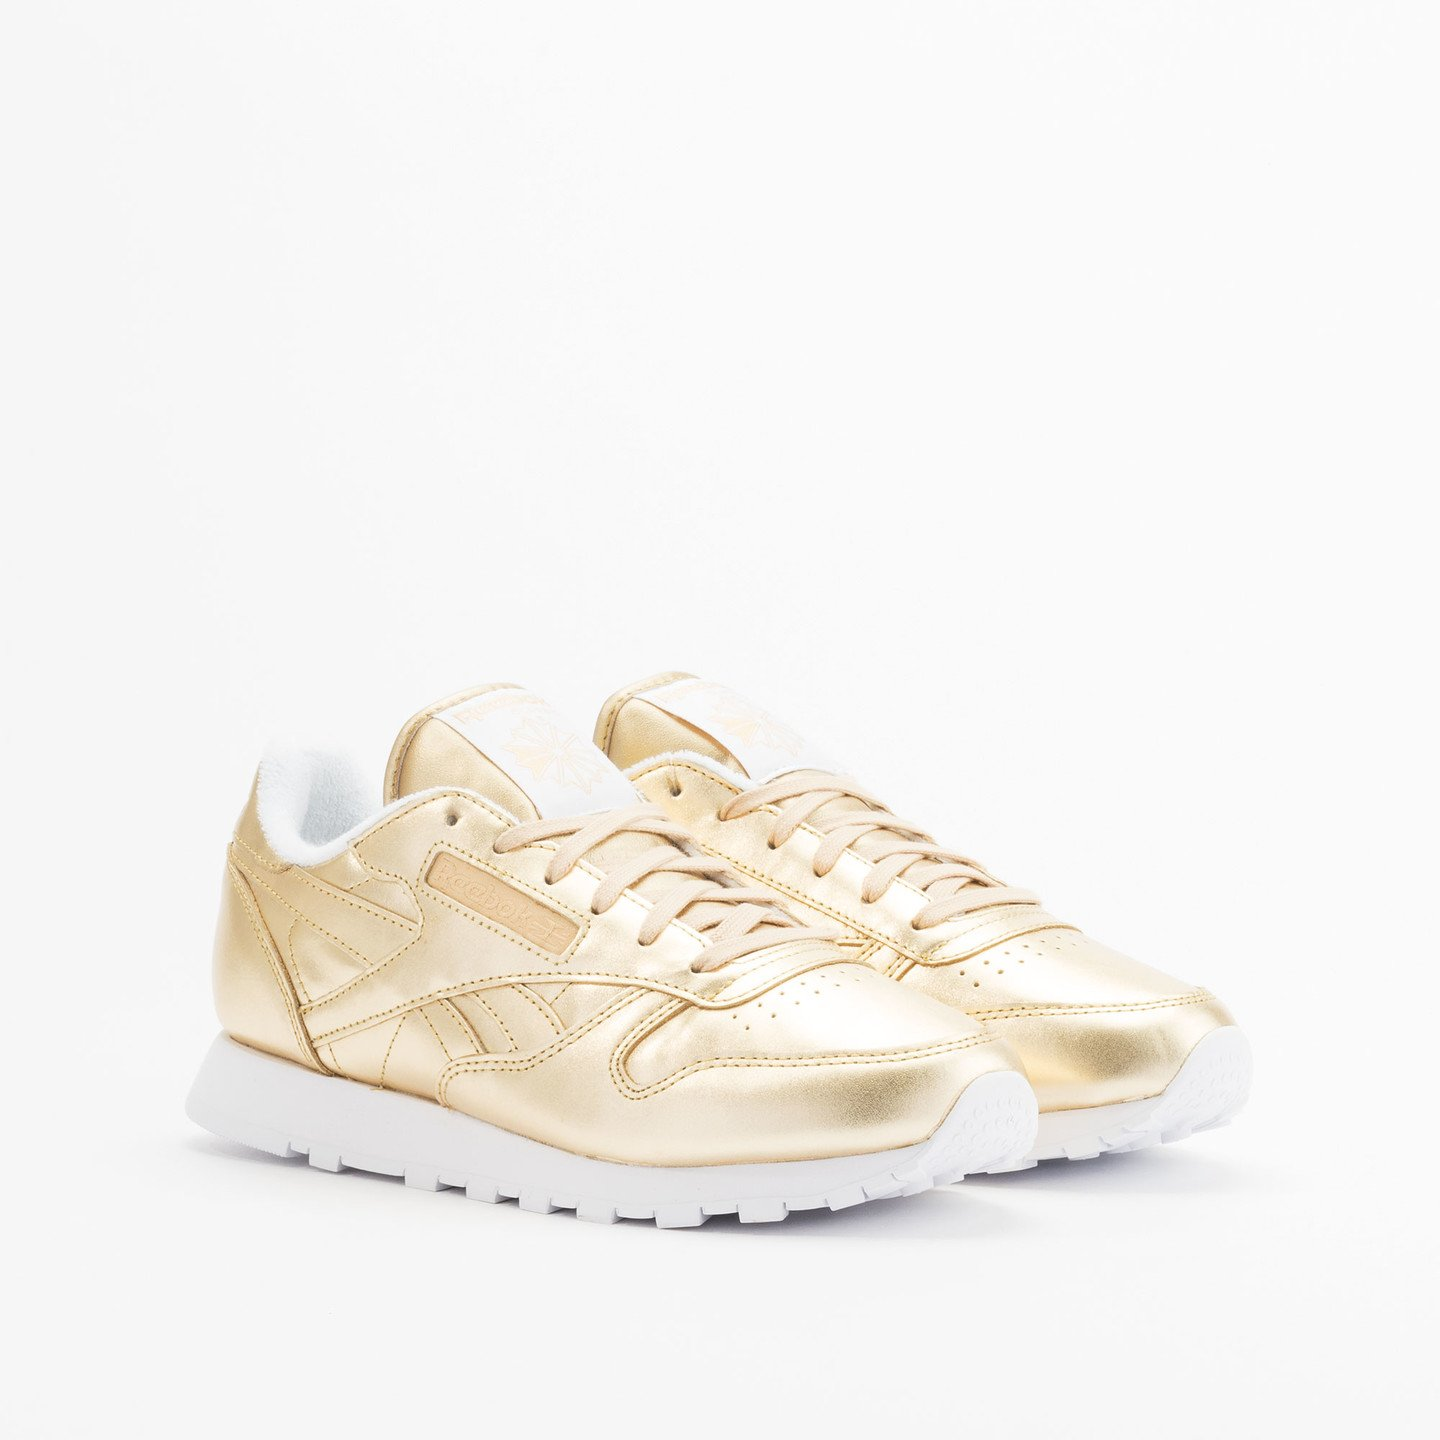 Reebok Classic Leather Spirit Sensation Gold / White V70668-37